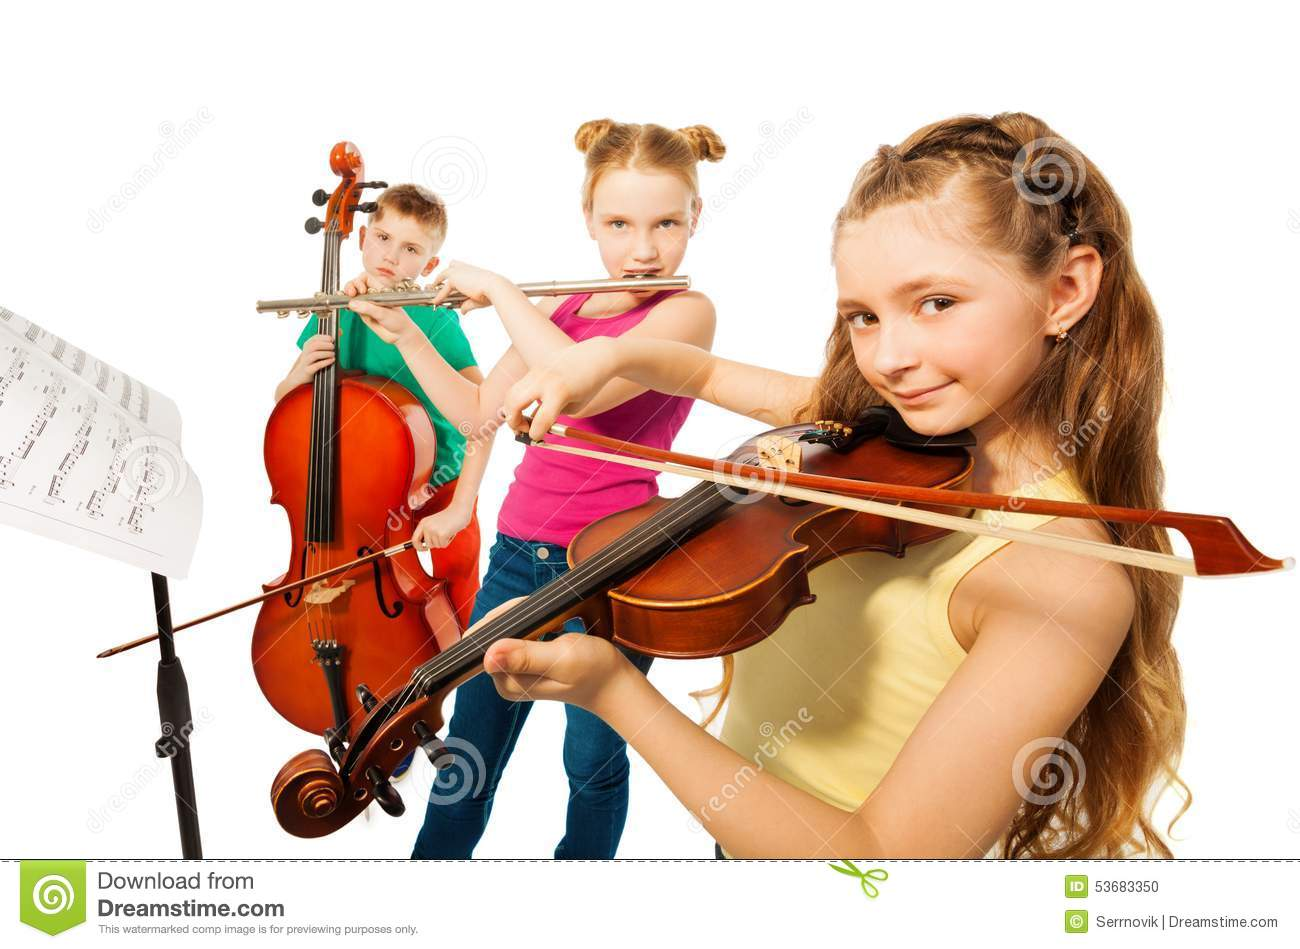 Essay about importance of music in life